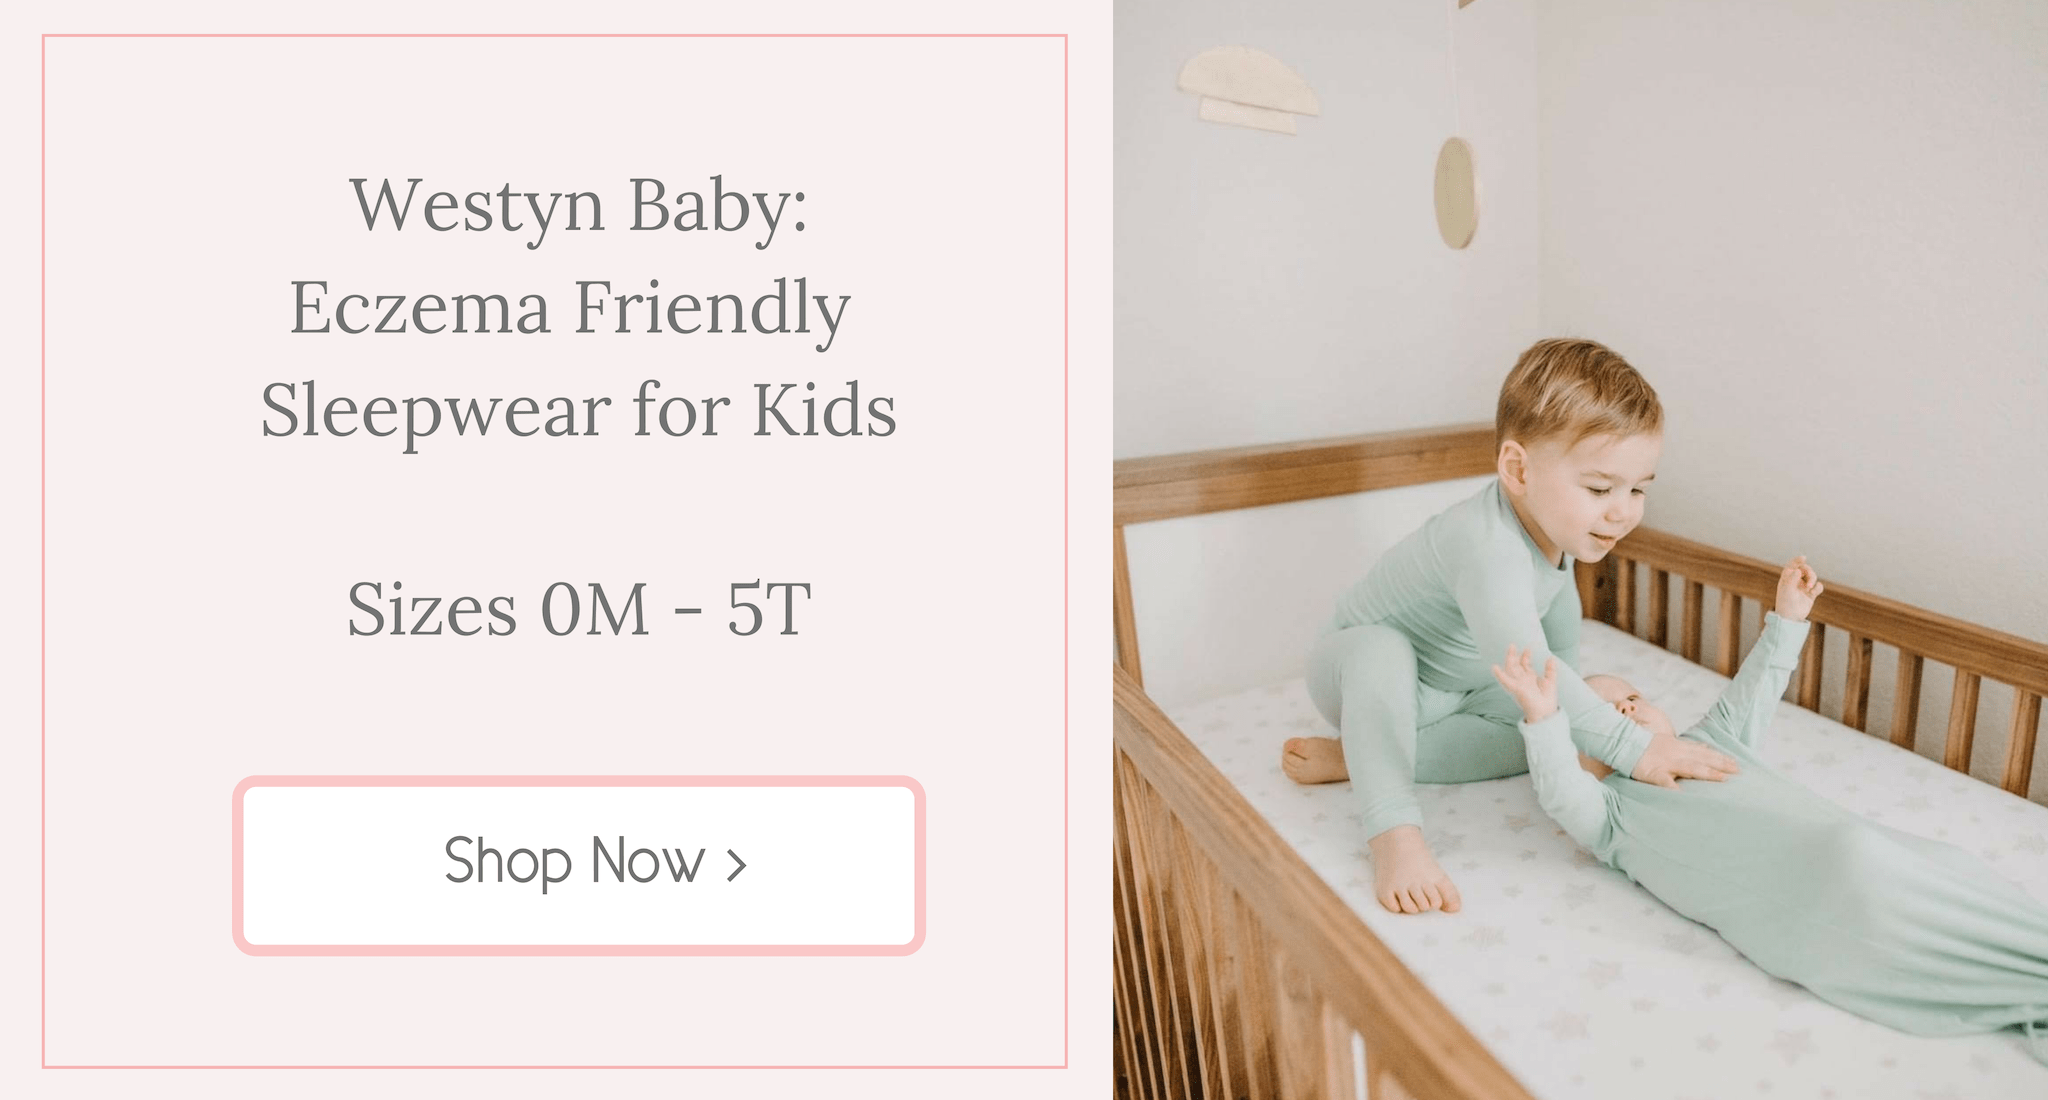 baby-eczema-relief-westyn-baby-eczema-friendly-sleepwear